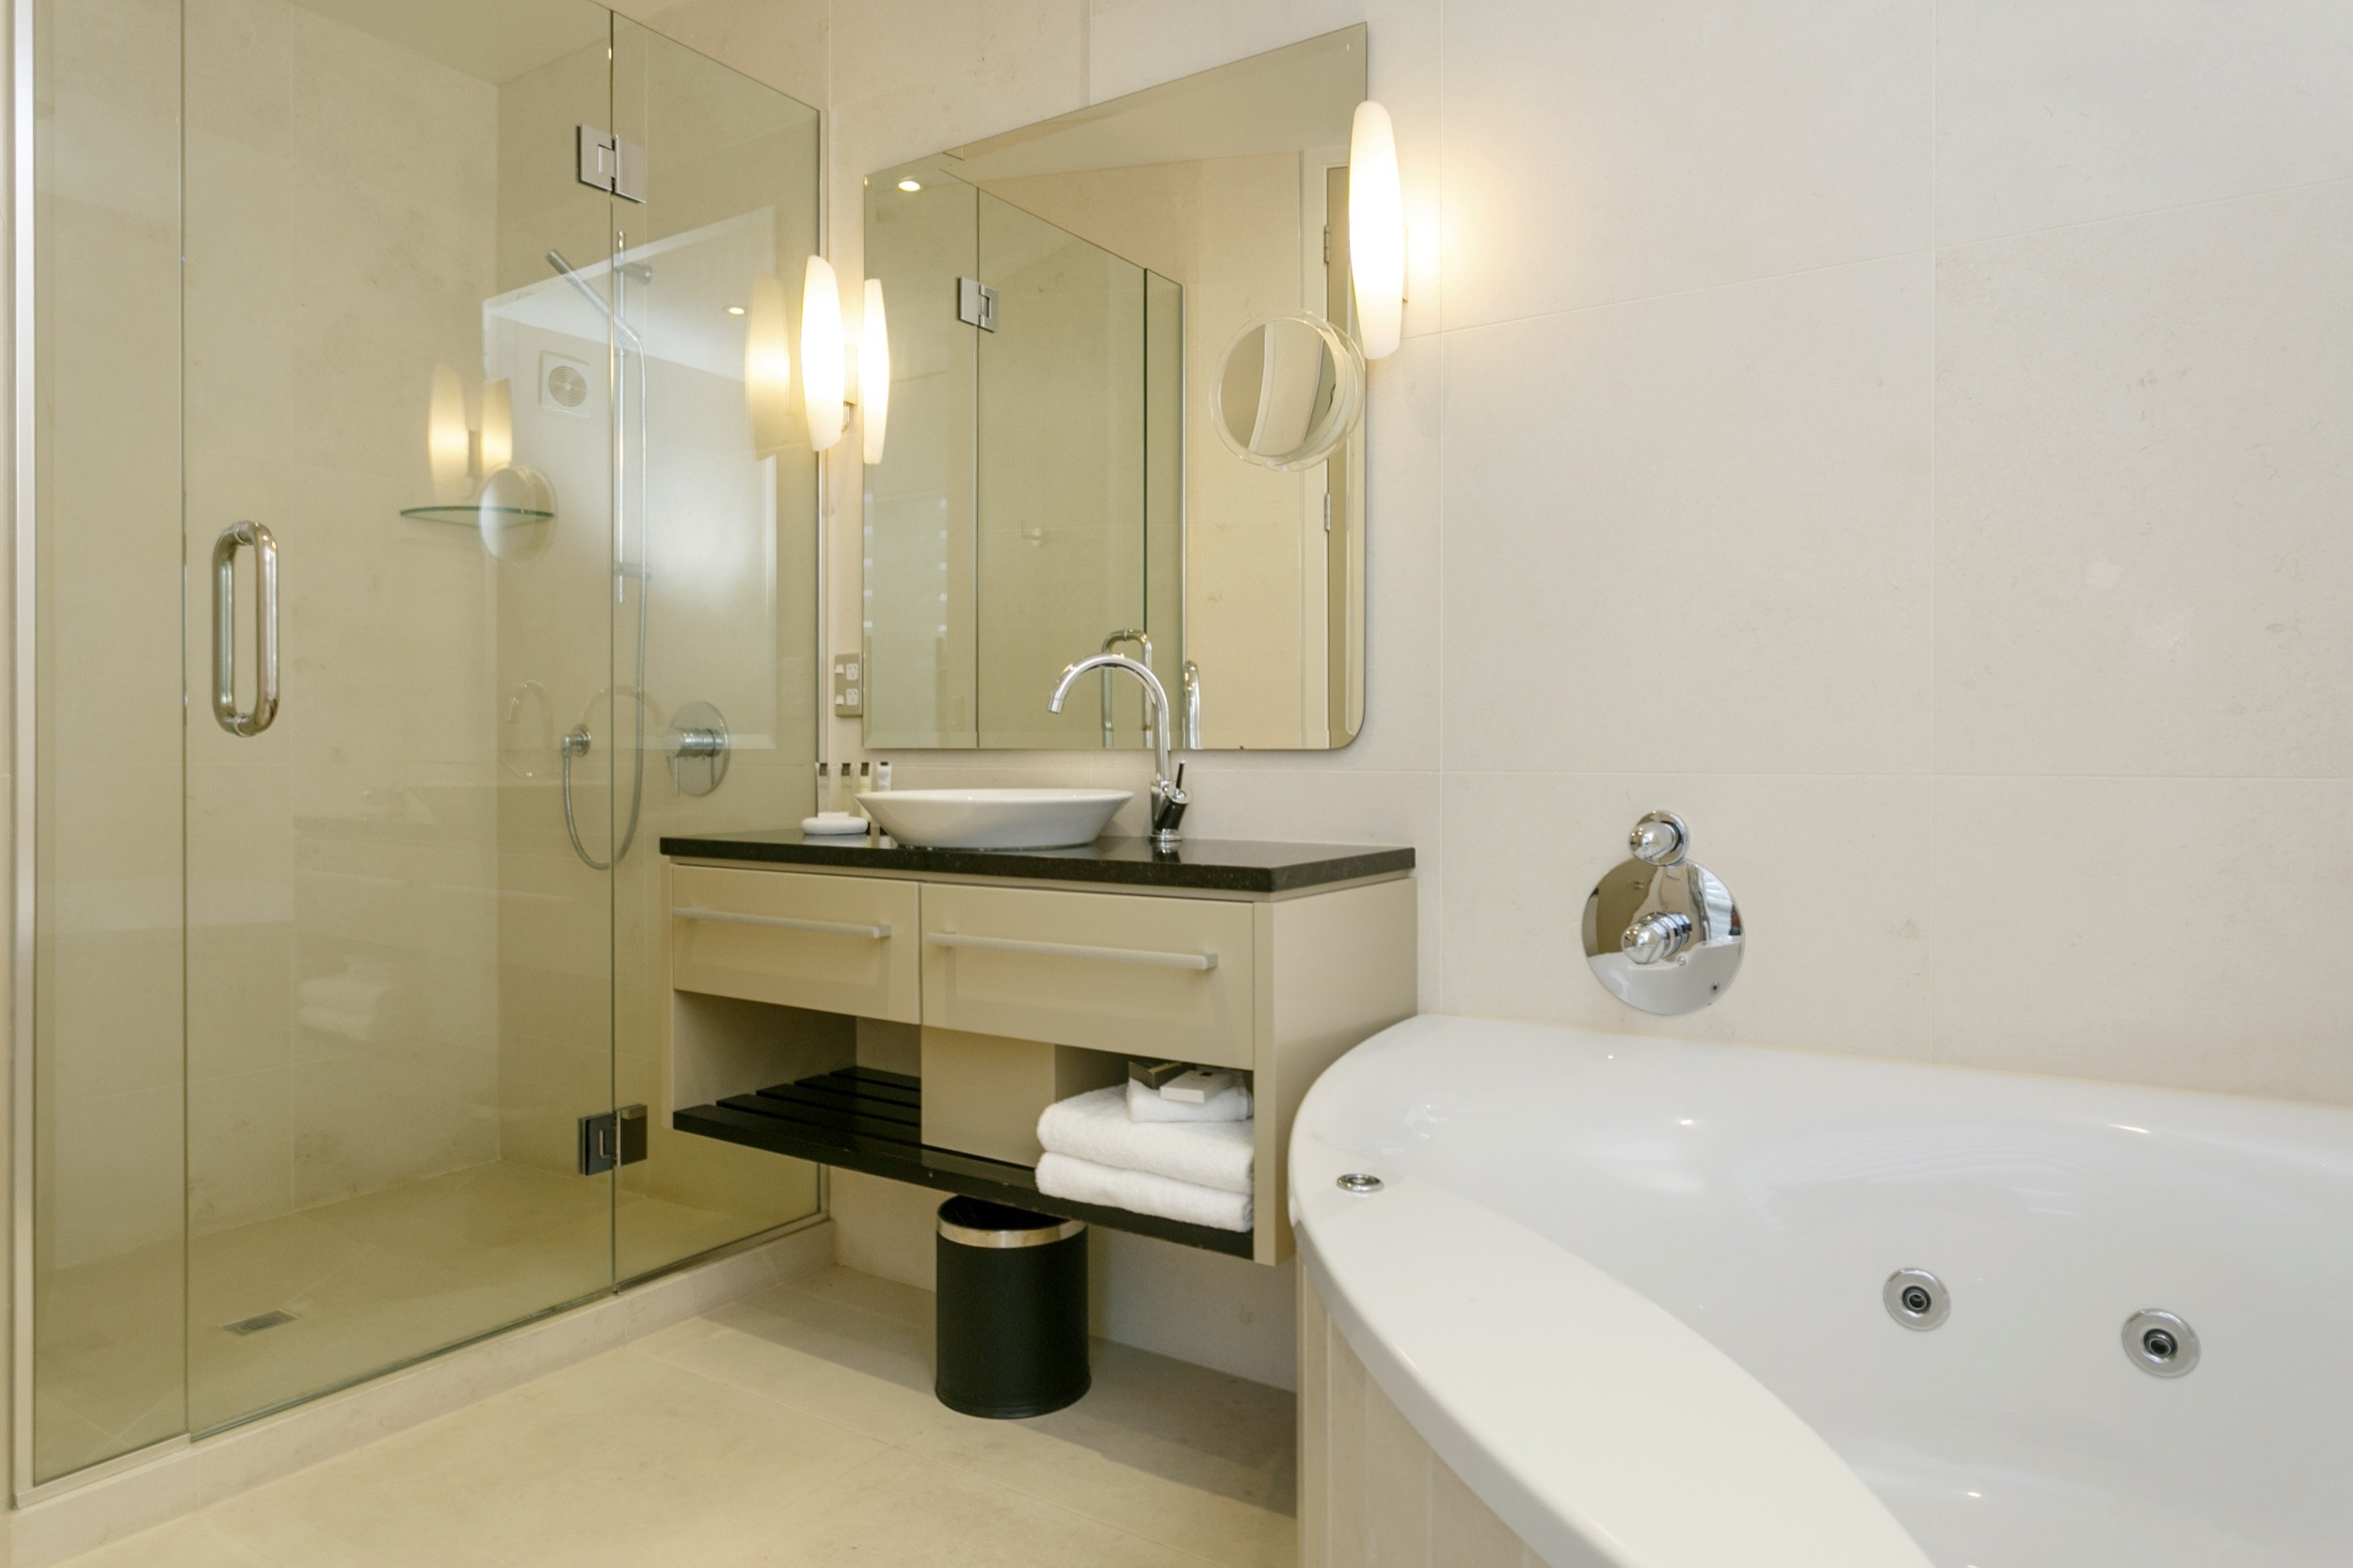 Ground floor two bedroom apartment master bedroom ensuite bathroom with spa bath 1.jpg